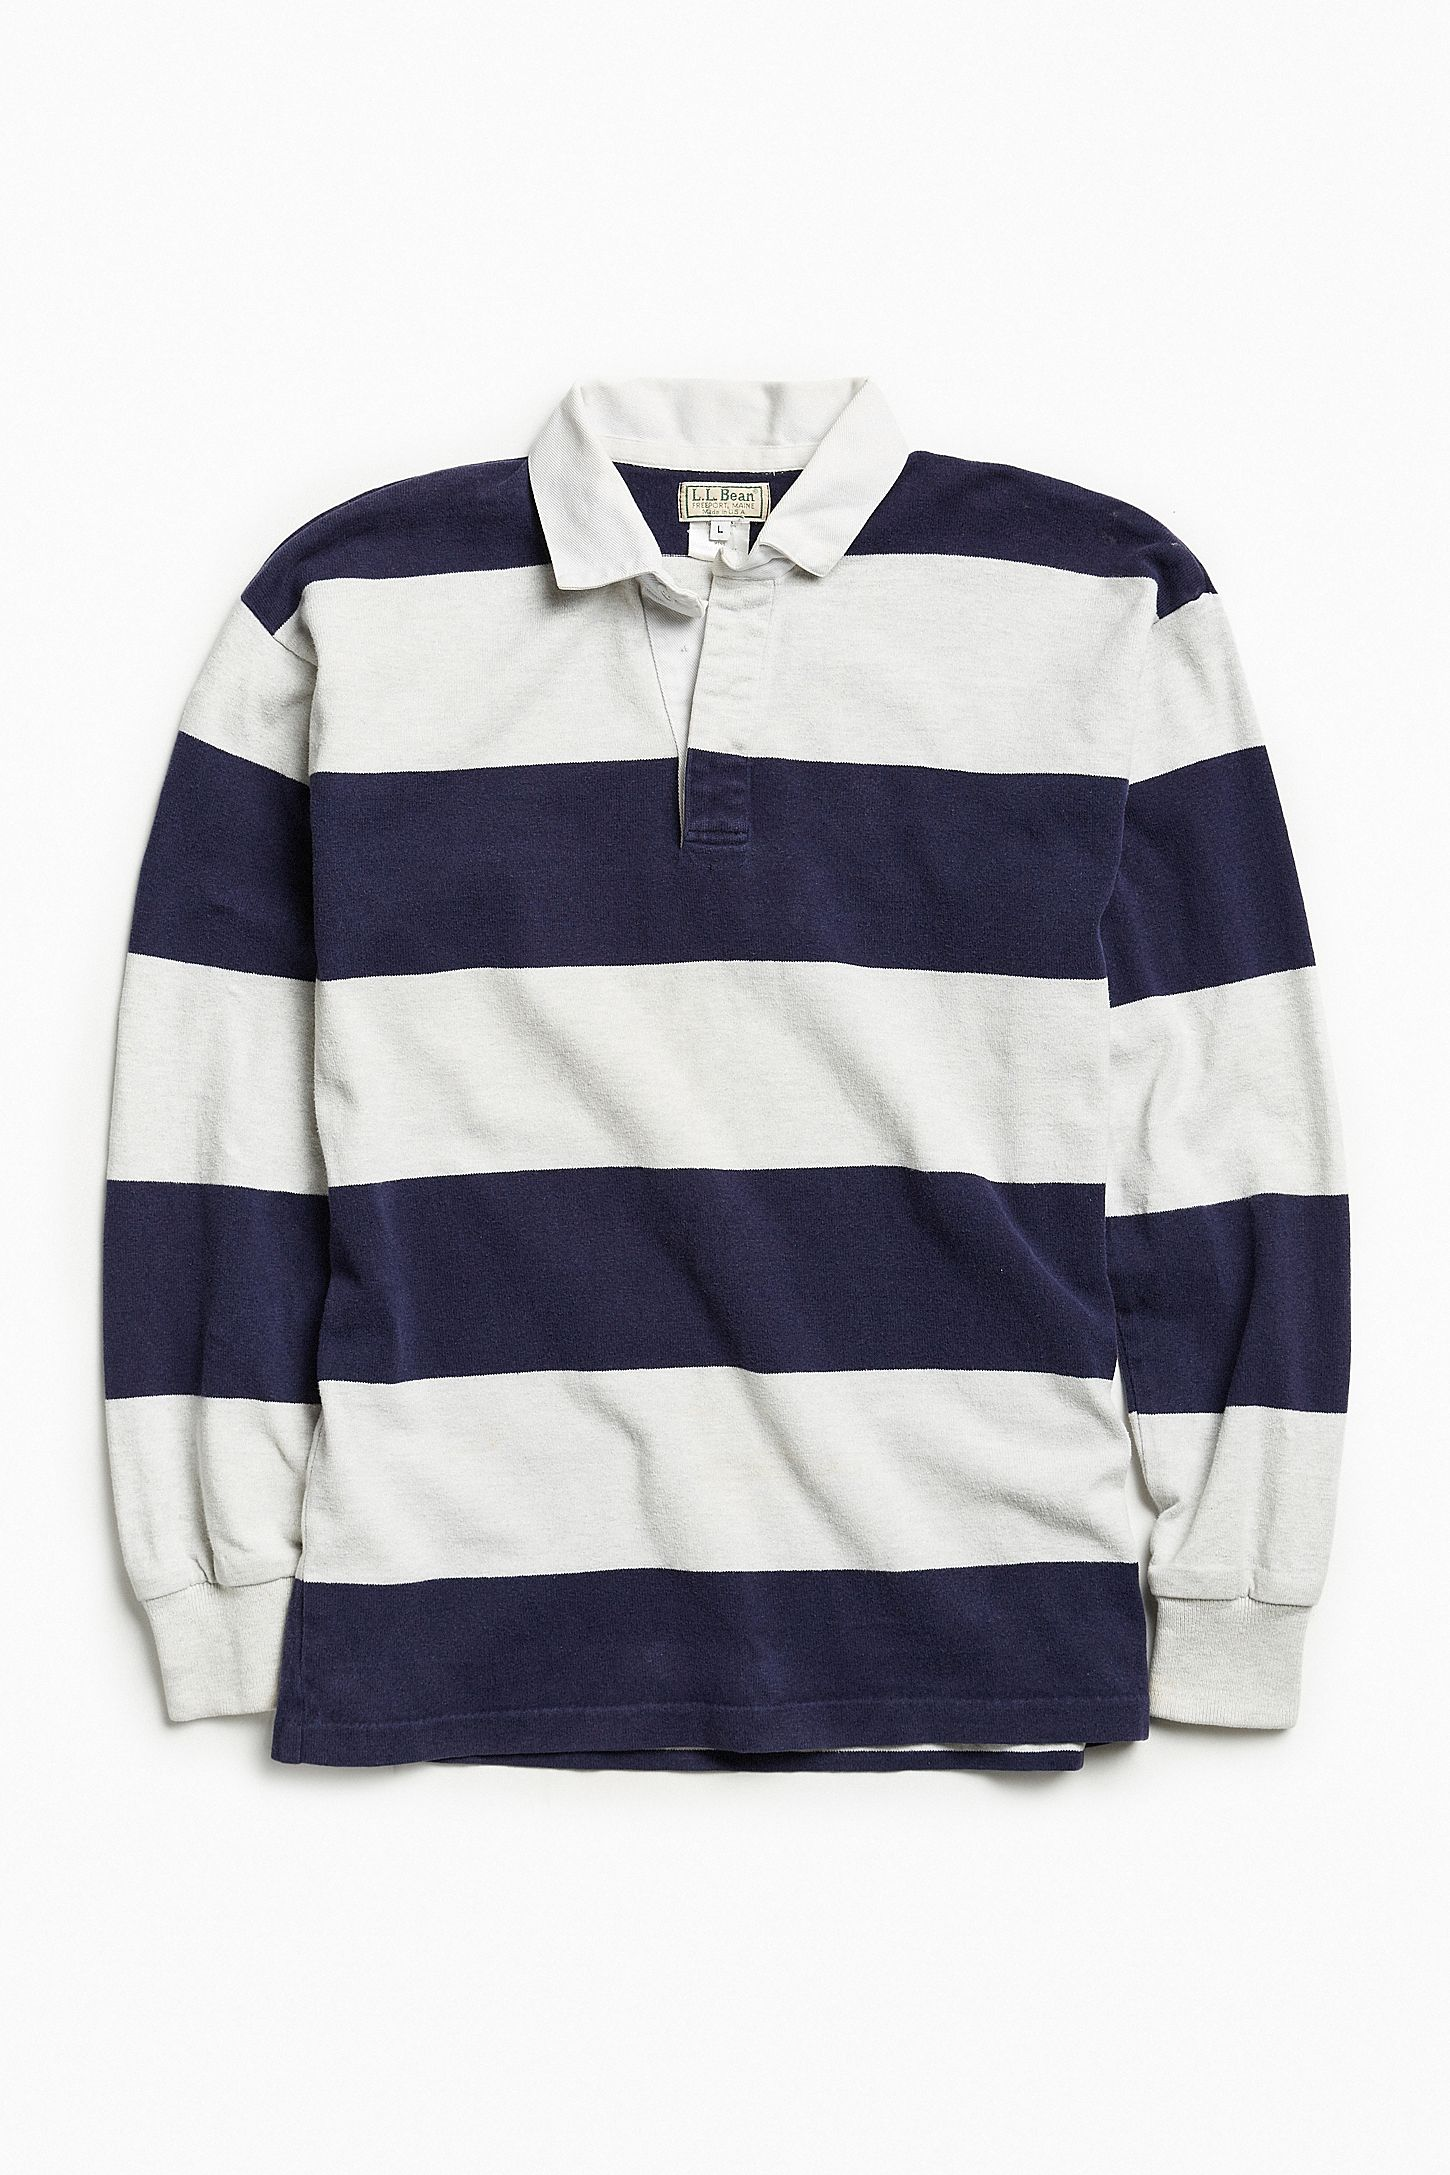 6854eea80 Vintage L.L. Bean Grey Stripe Rugby Shirt | Urban Outfitters